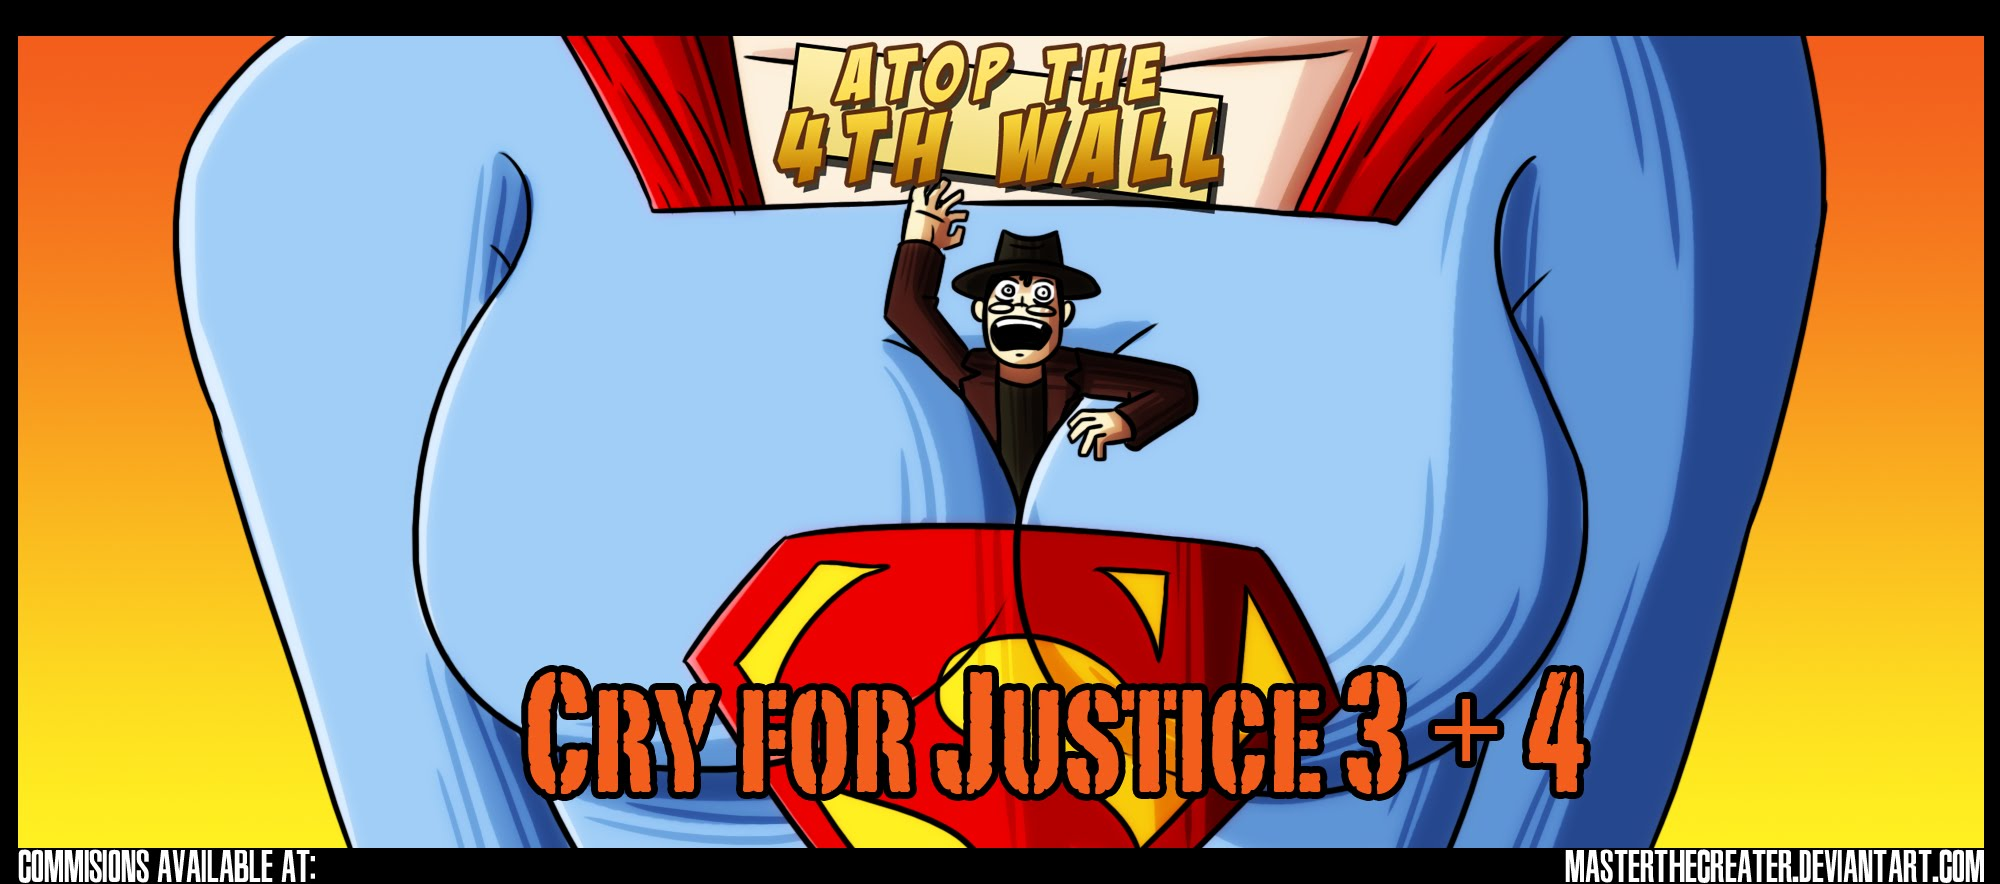 Justice League: Cry for Justice 3-4